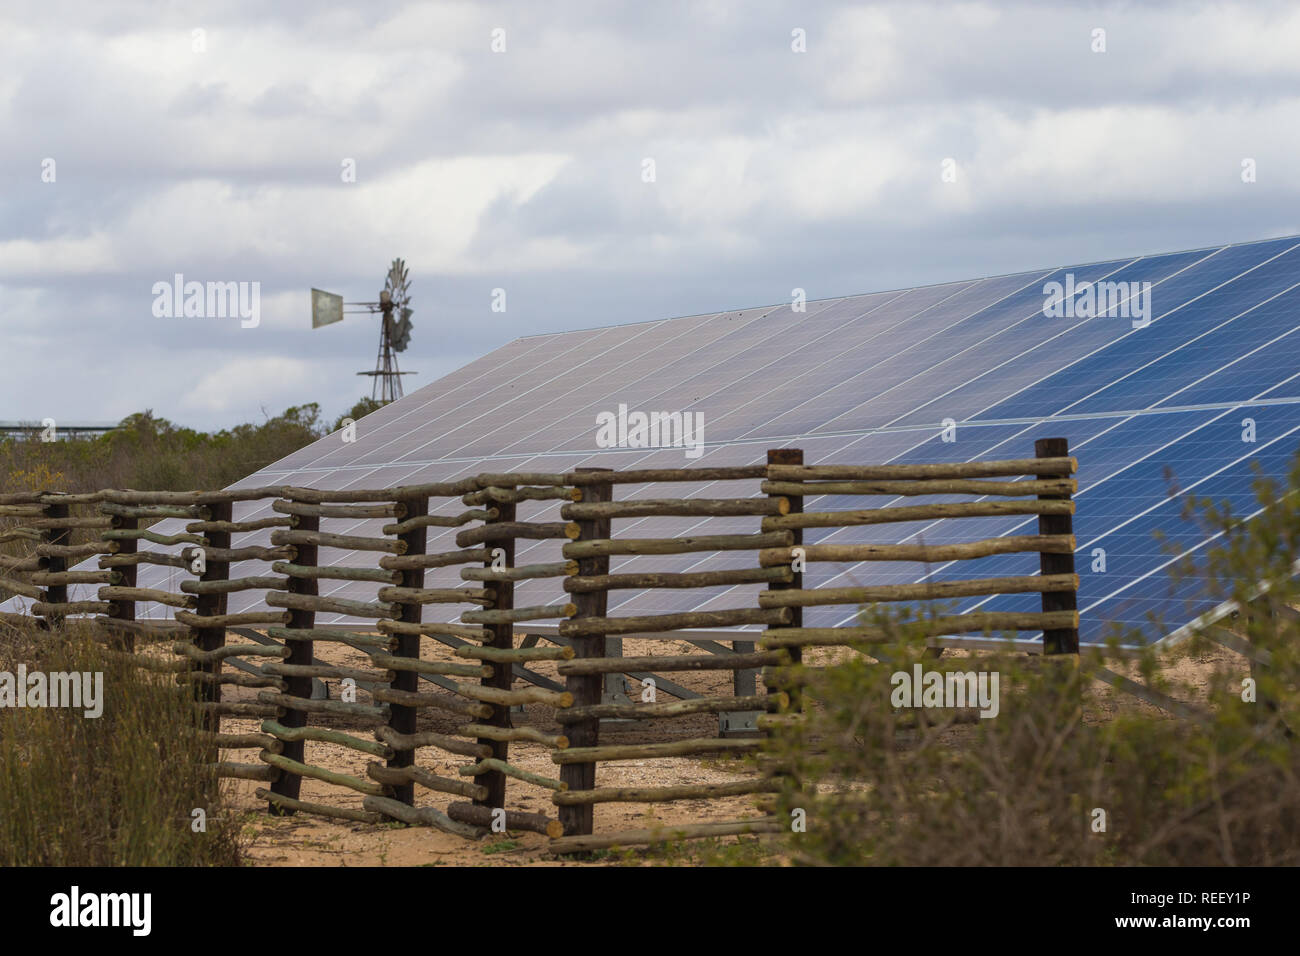 solar energy panels, photovoltaic, in long bank in nature to convert the sunlight into energy for green living in South Africa with wind pump behind - Stock Image